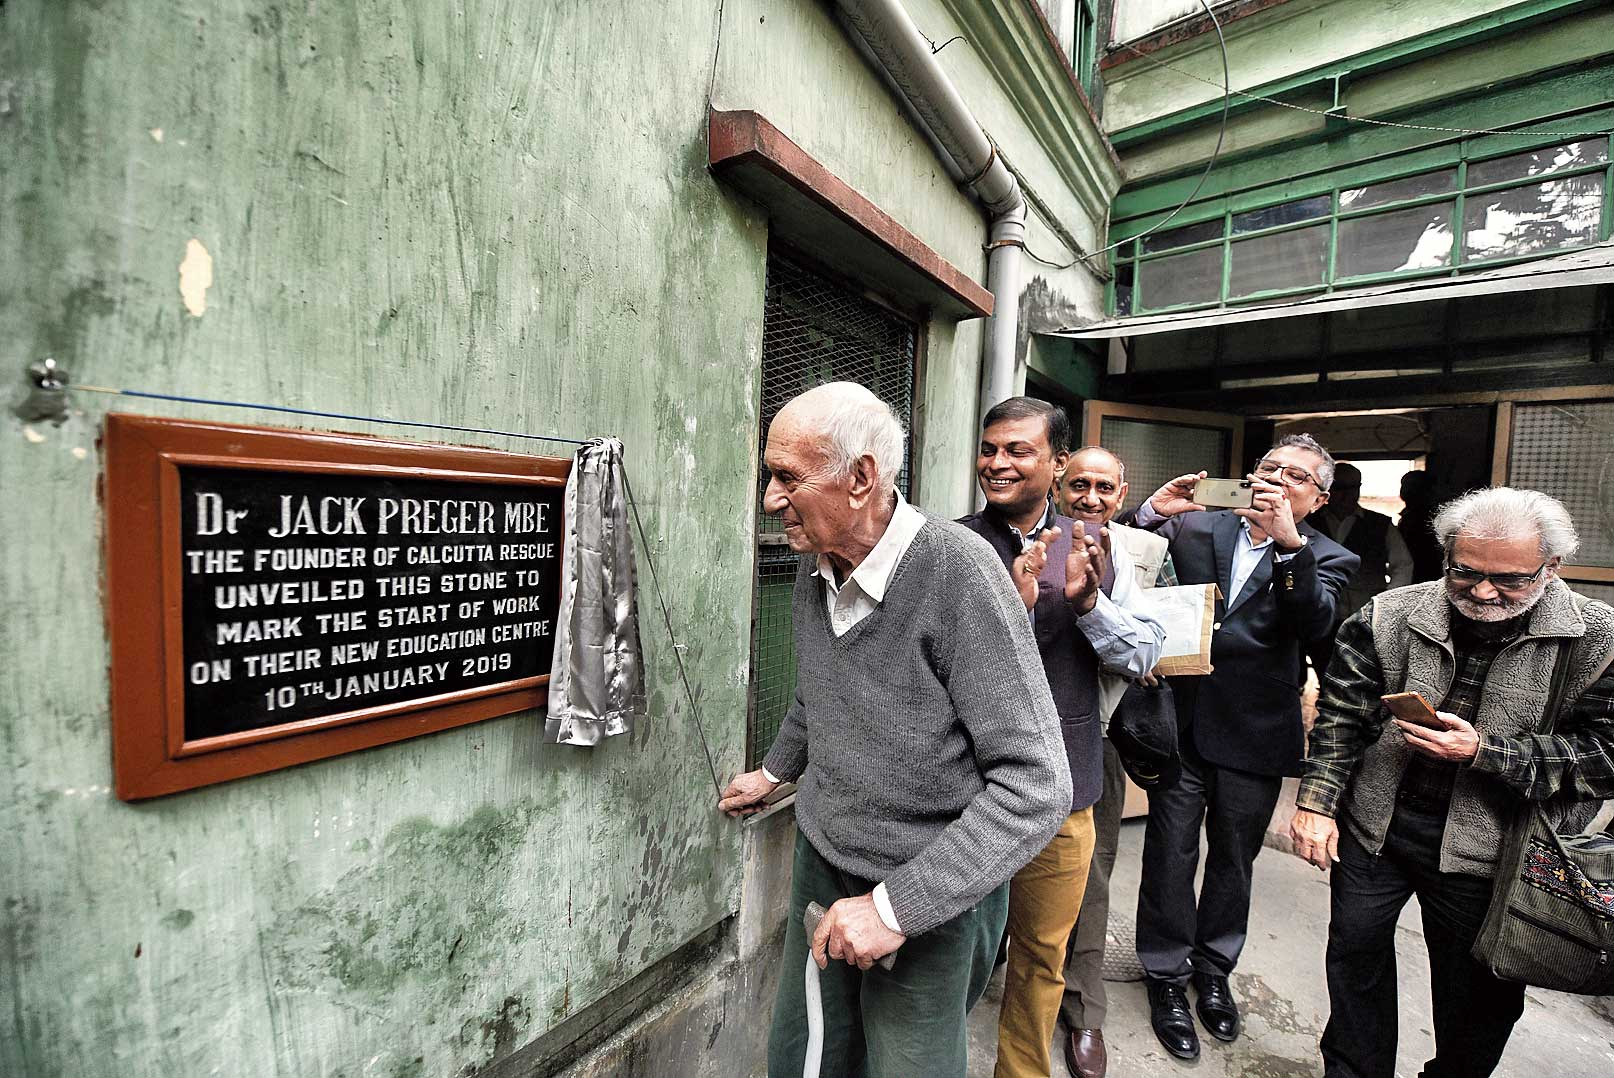 Jack Preger unveils the plaque of Calcutta Rescue's new education centre on Thursday.